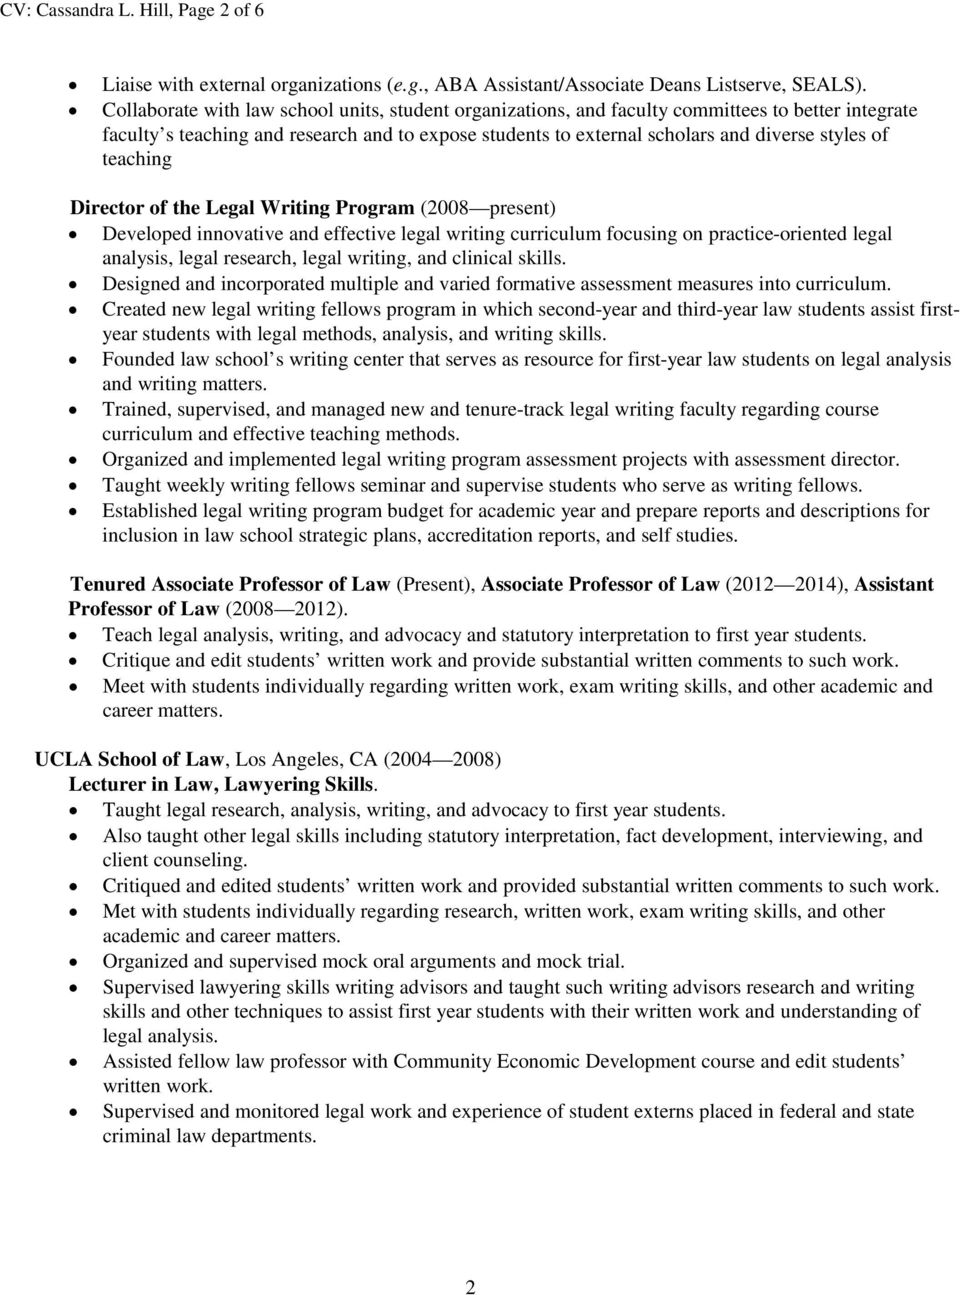 teaching Director of the Legal Writing Program (2008 present) Developed innovative and effective legal writing curriculum focusing on practice-oriented legal analysis, legal research, legal writing,